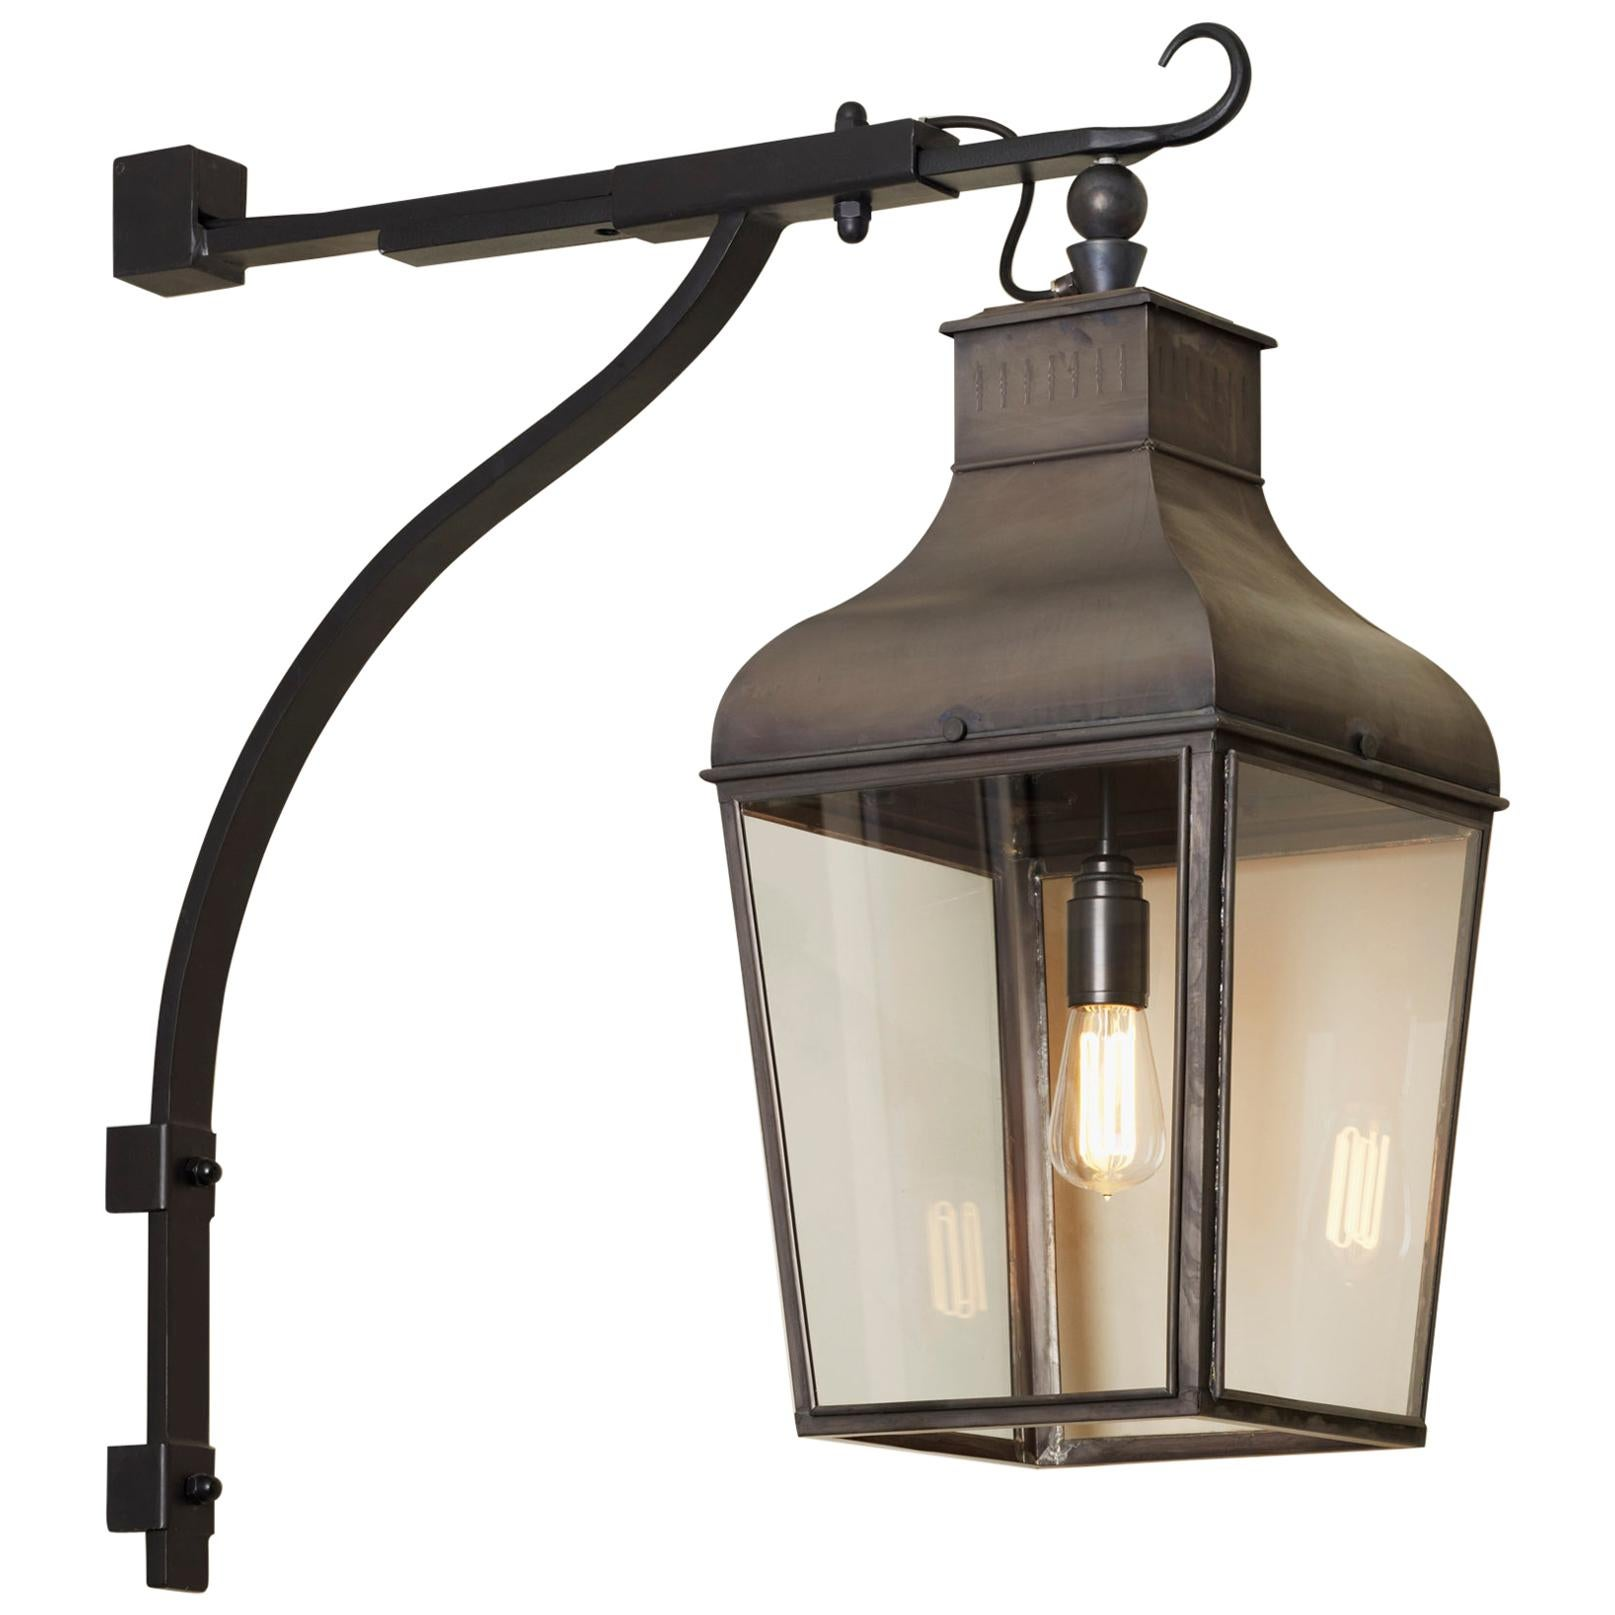 Tekna Montrose Wall C Light with Dark Bronze Finish and Clear Glass